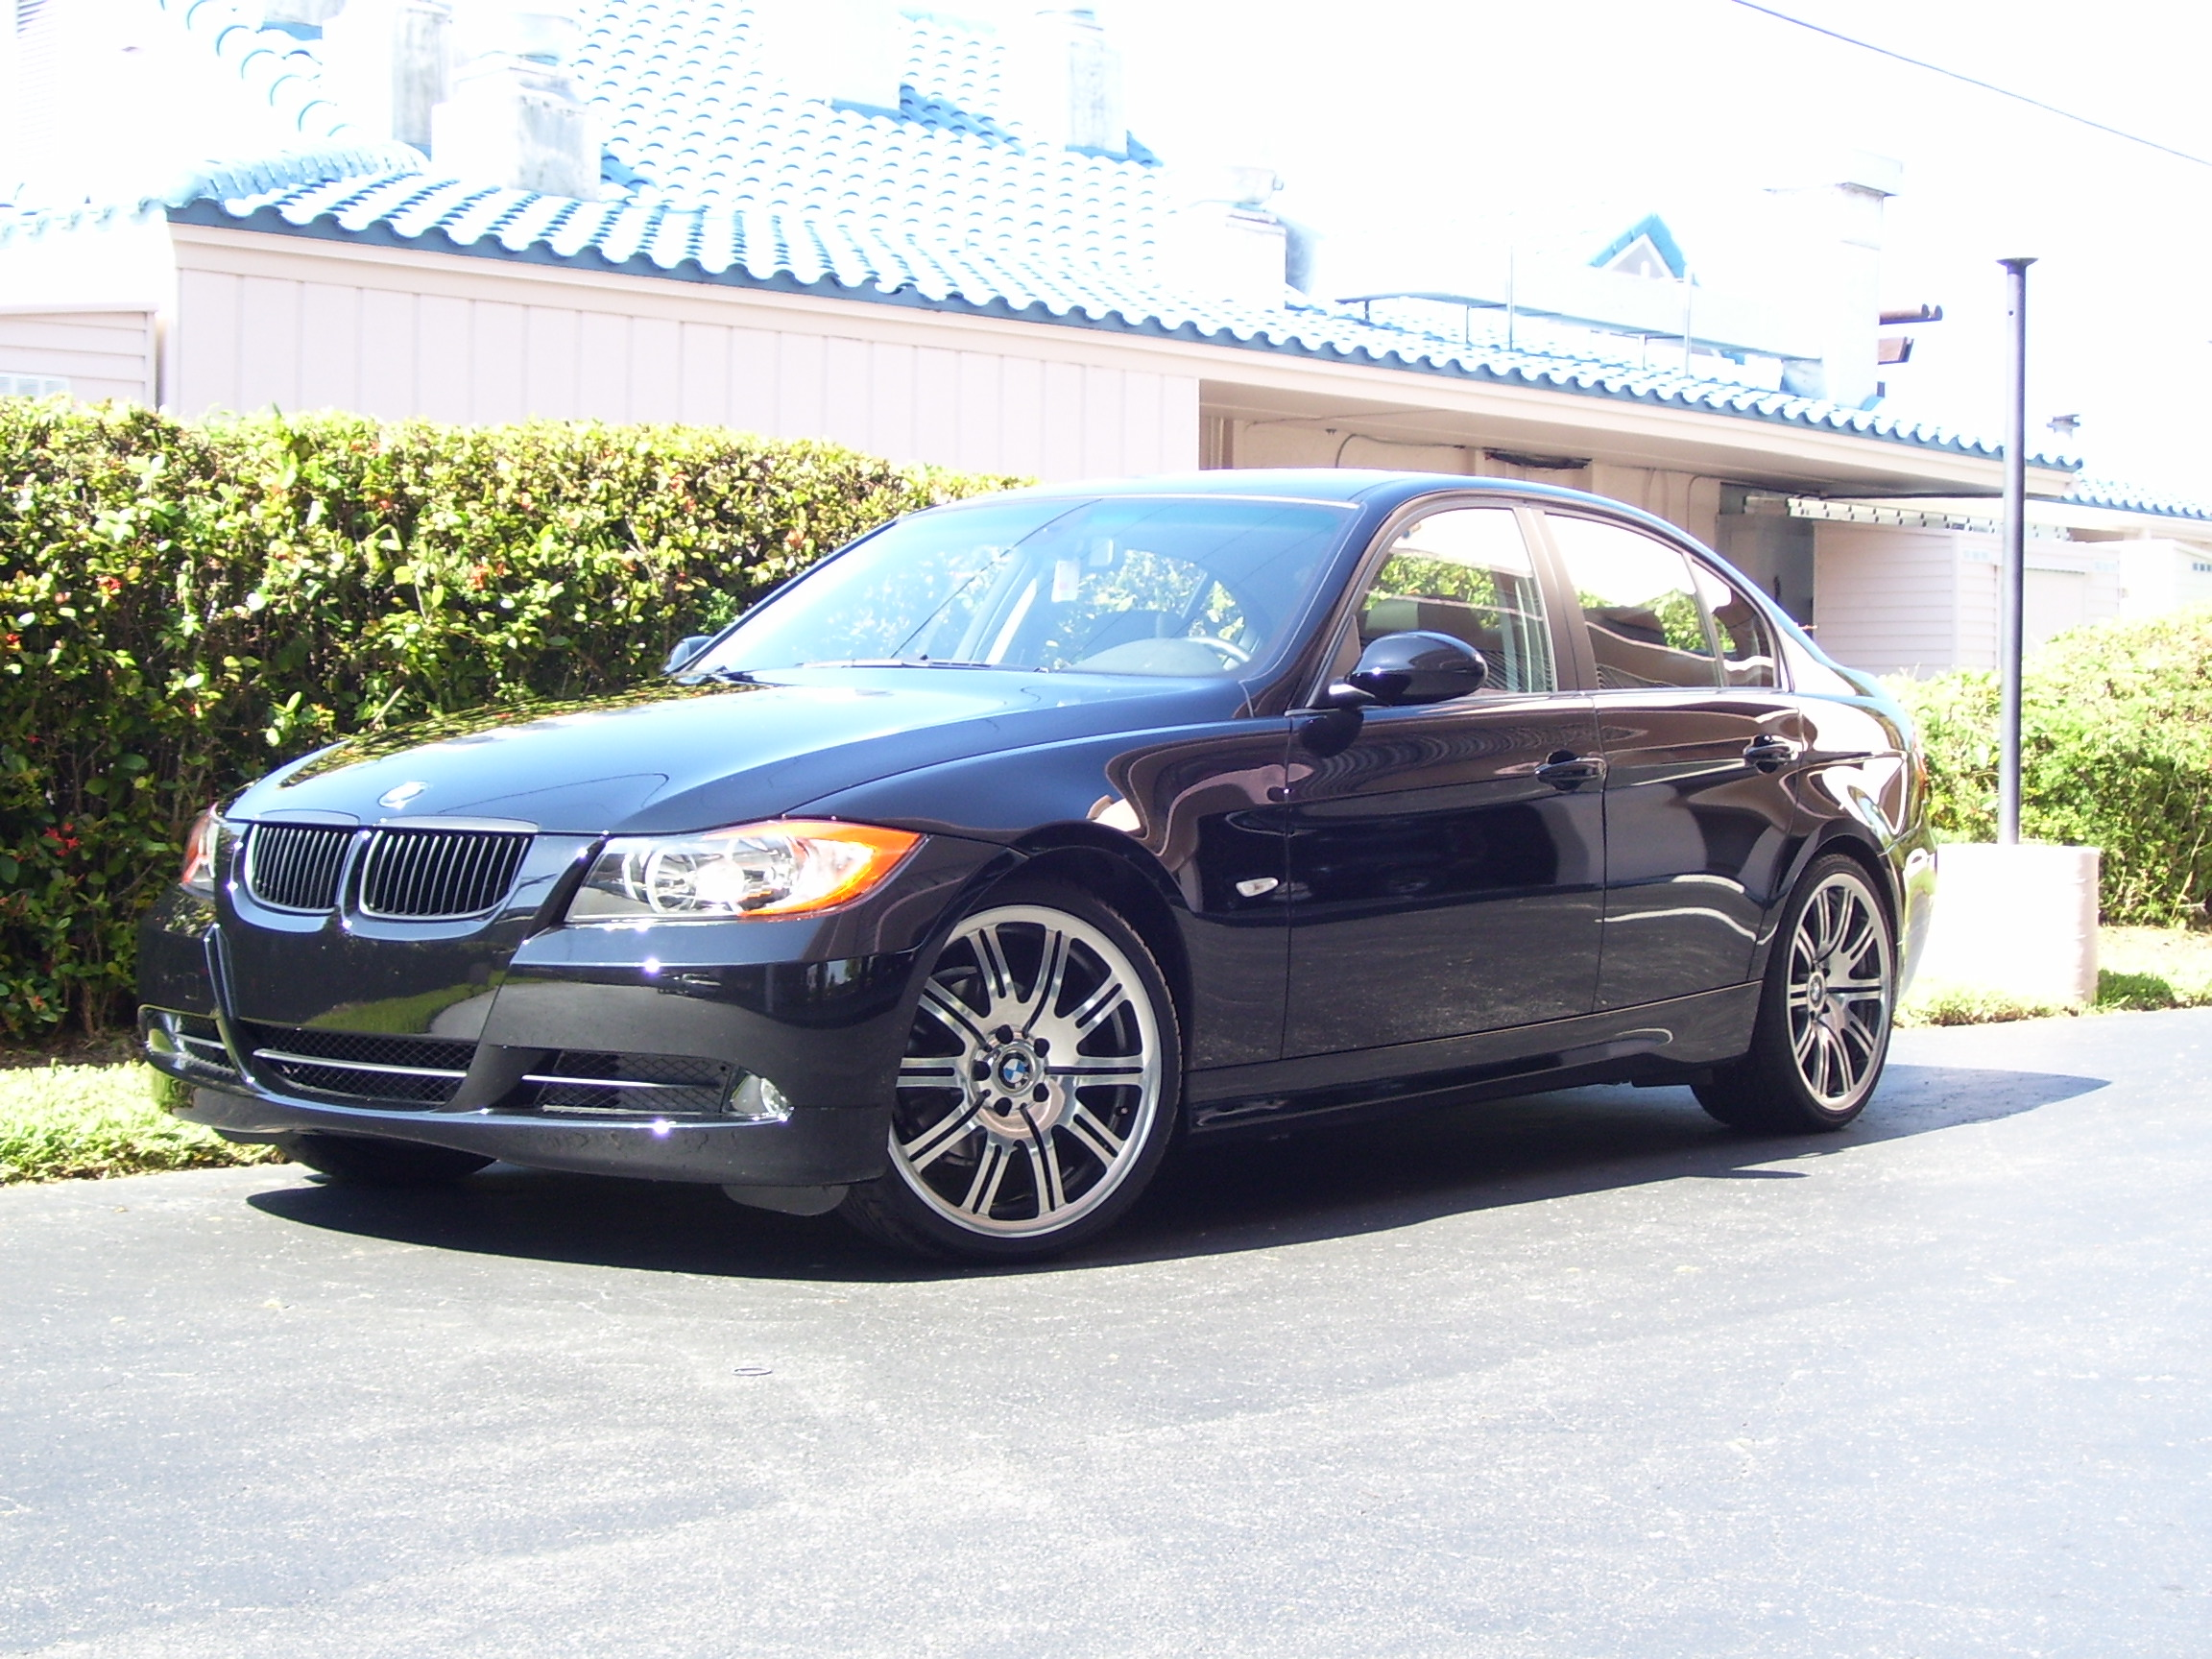 2007 Bmw 328i 1 8 Mile Drag Racing Timeslip 0 60